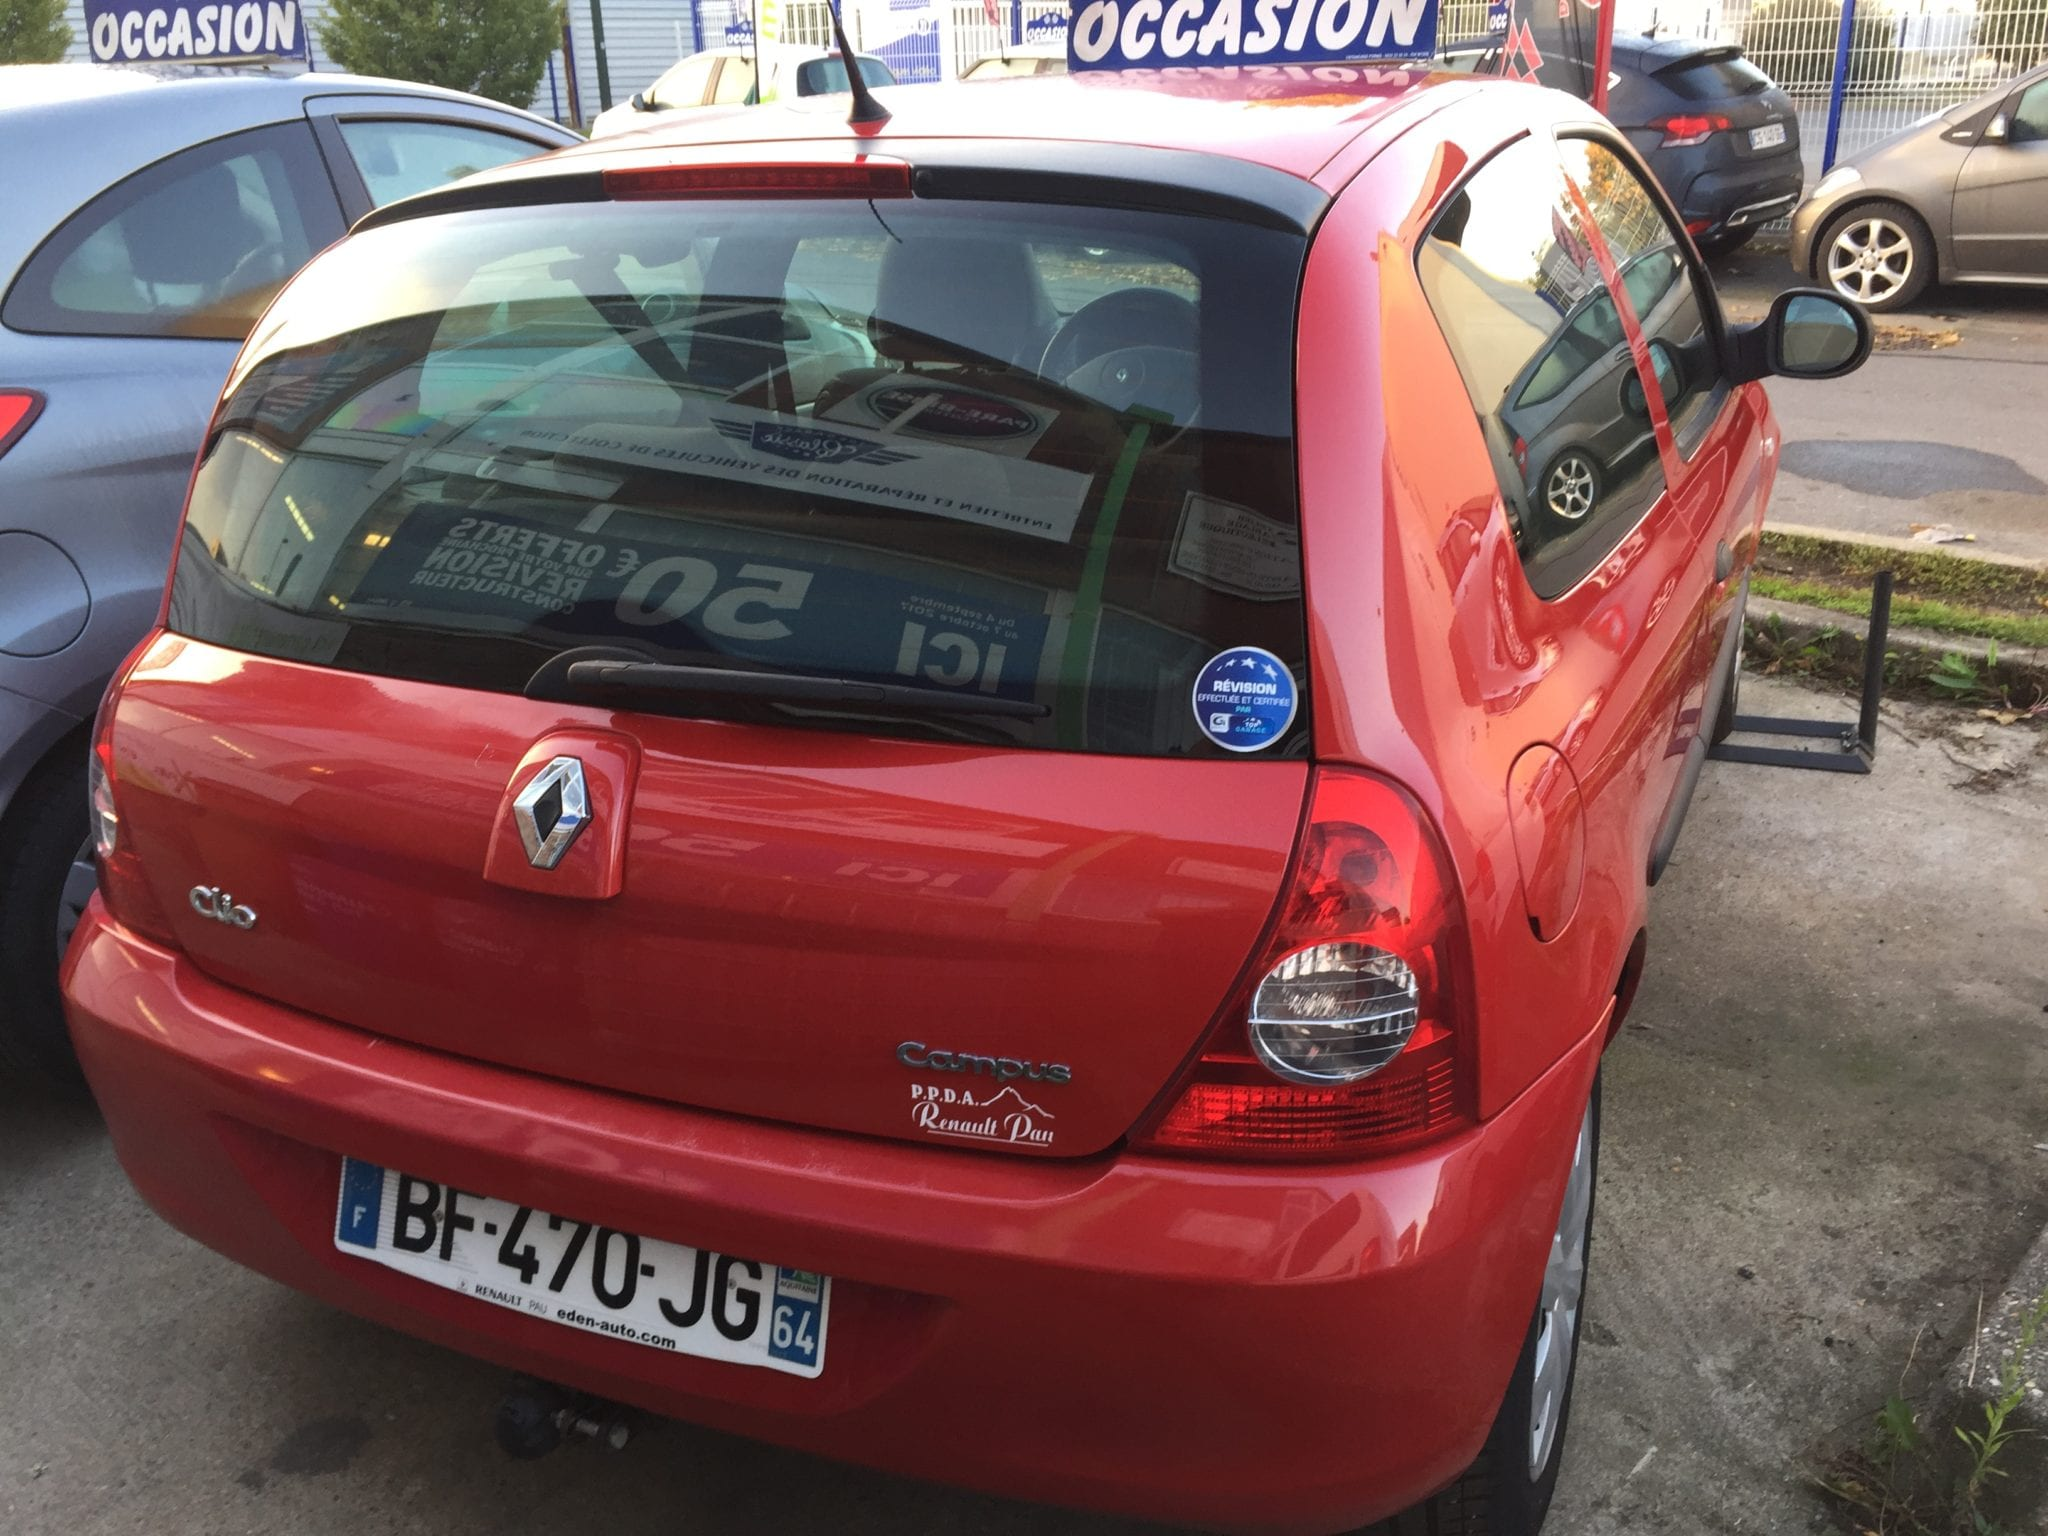 Renault CLIO 2 CAMPUS II (3) CAMPUS 1.2 60 GPL AUTHENTIQUE 3P - Image 3